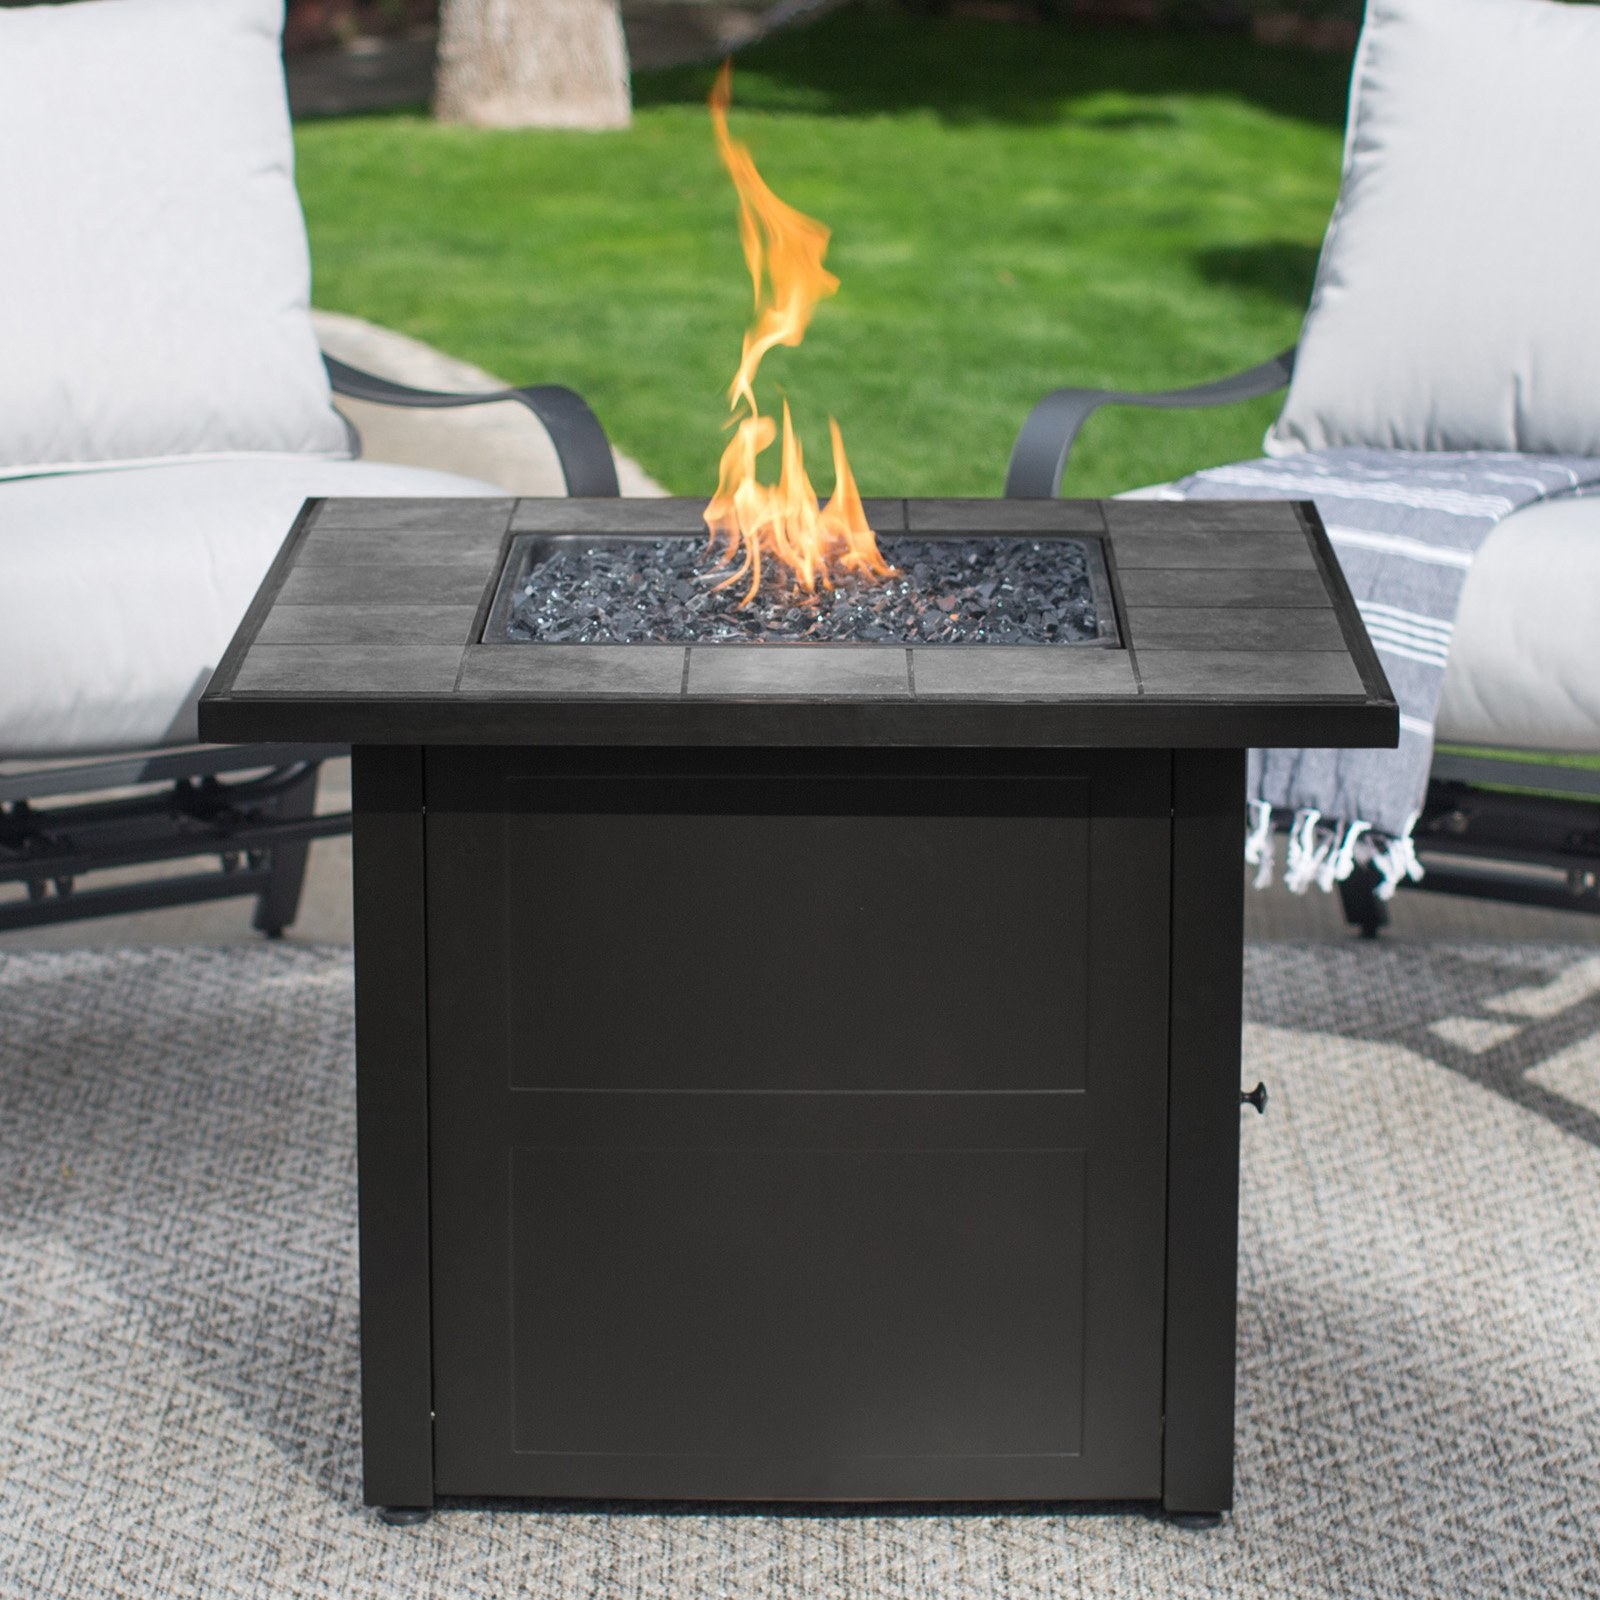 Endless Summer Lp Gas Outdoor Fire Pit Slate Tile Mantel Walmart inside dimensions 1600 X 1600